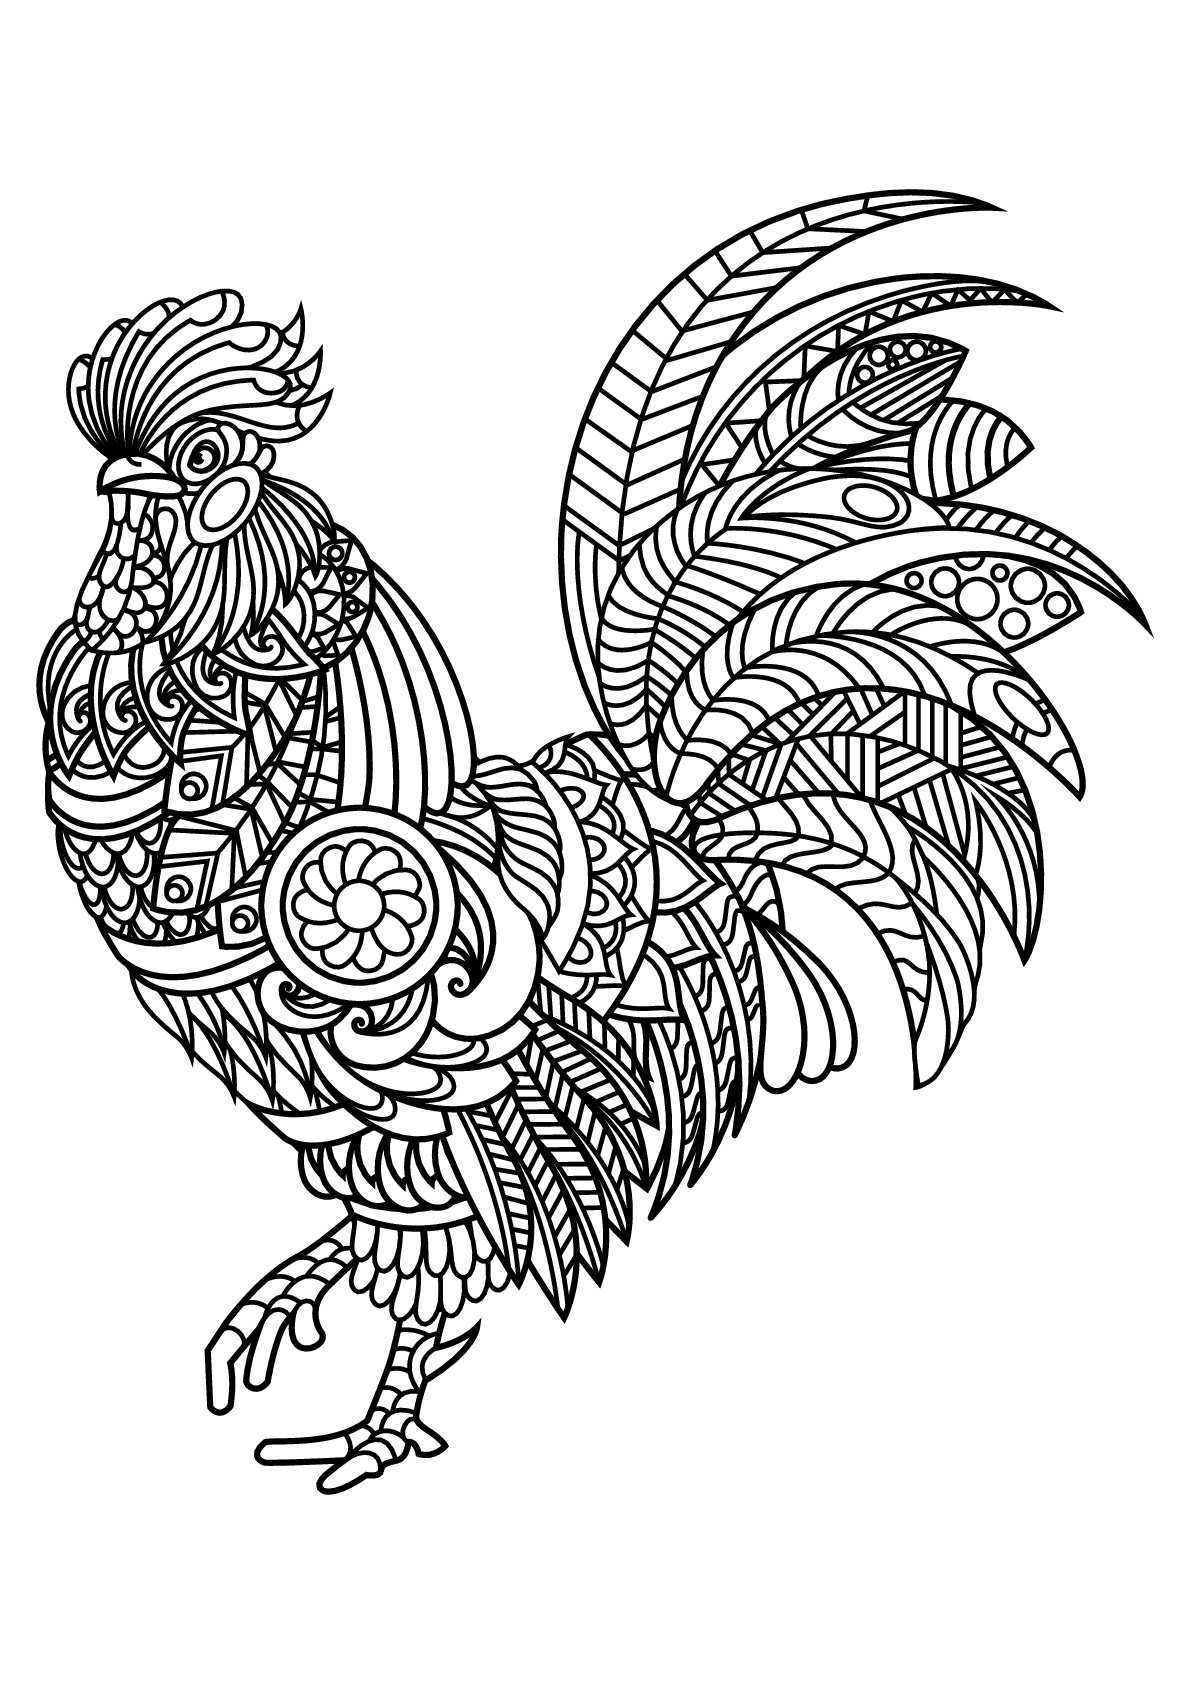 Rooster Coloring Pages For Adults